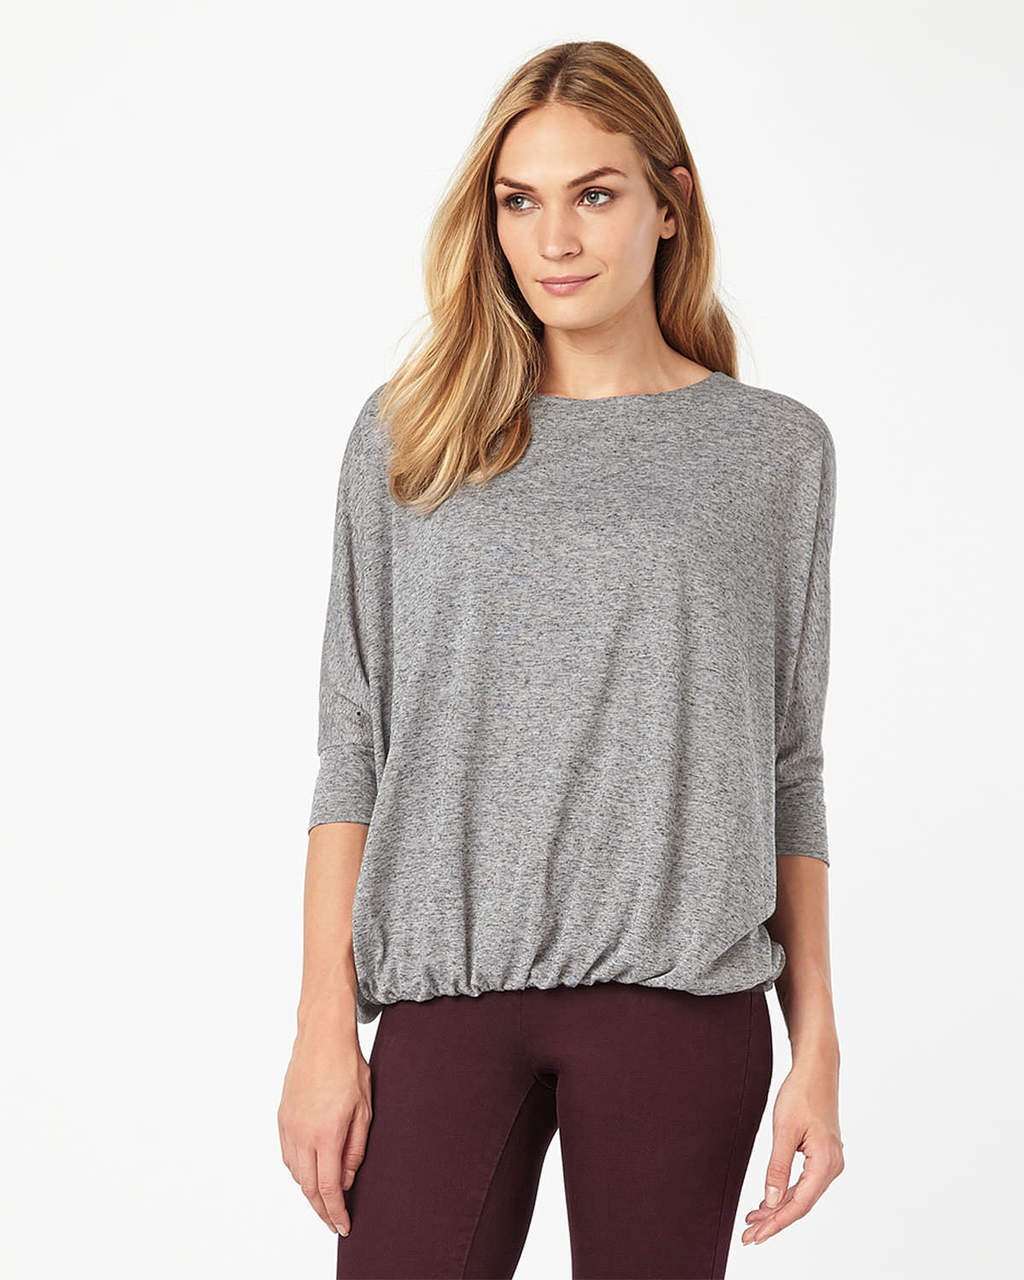 Briony Blouson Top - pattern: plain; predominant colour: light grey; occasions: casual; length: standard; style: top; fibres: polyester/polyamide - mix; fit: body skimming; neckline: crew; sleeve length: 3/4 length; sleeve style: standard; pattern type: fabric; texture group: jersey - stretchy/drapey; wardrobe: basic; season: a/w 2016